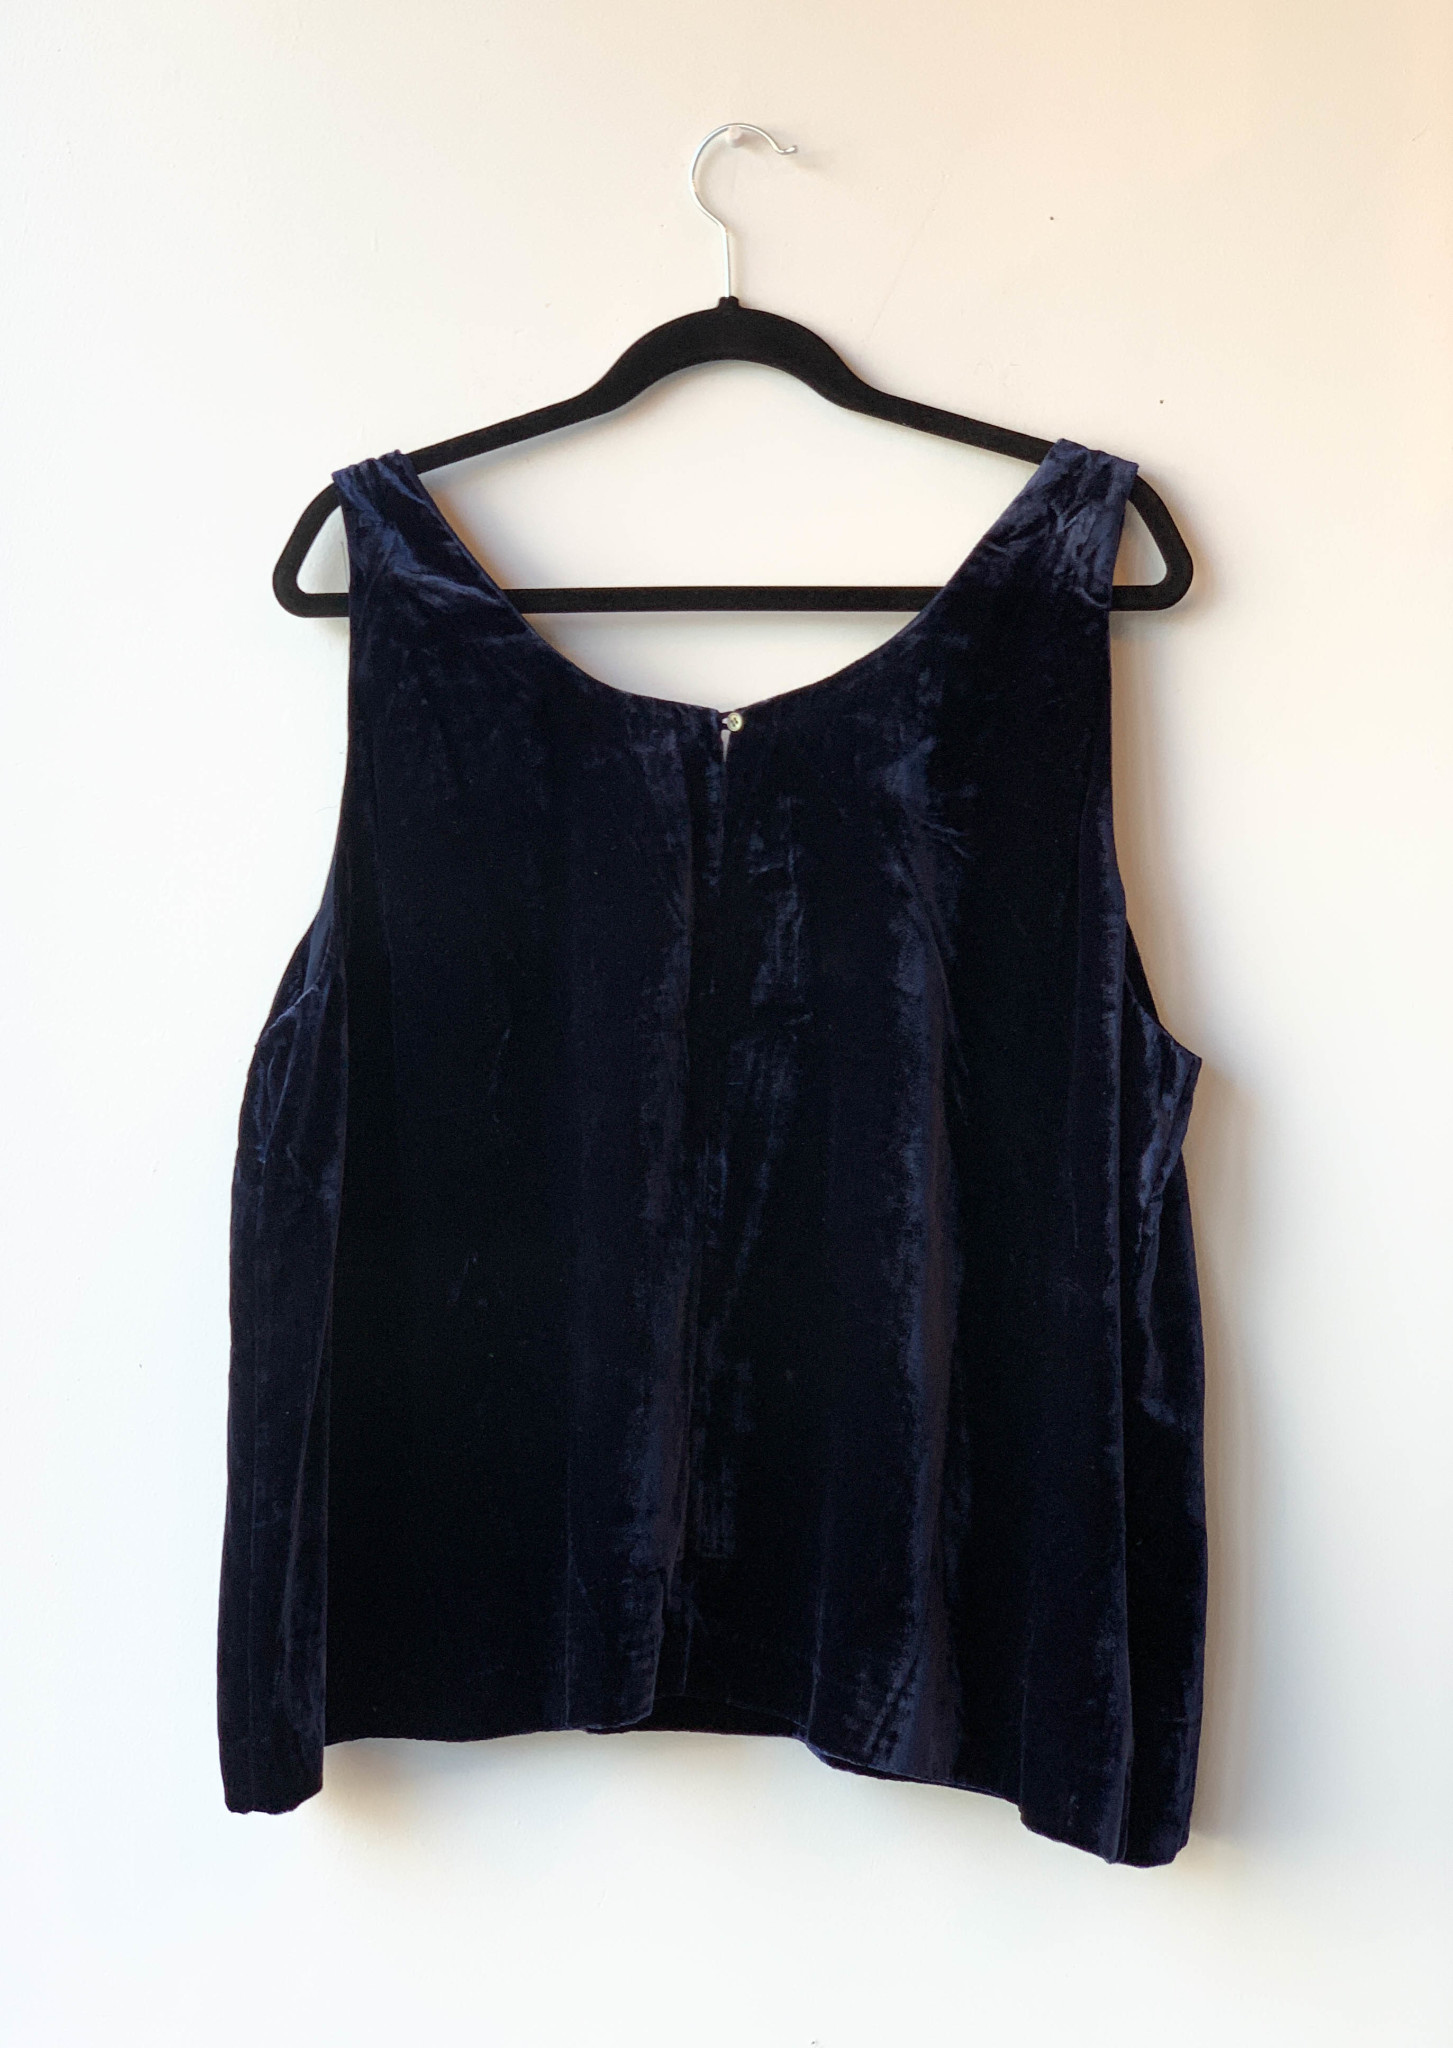 J.Crew BLUE VELVET TOP - NEW WITH TAG